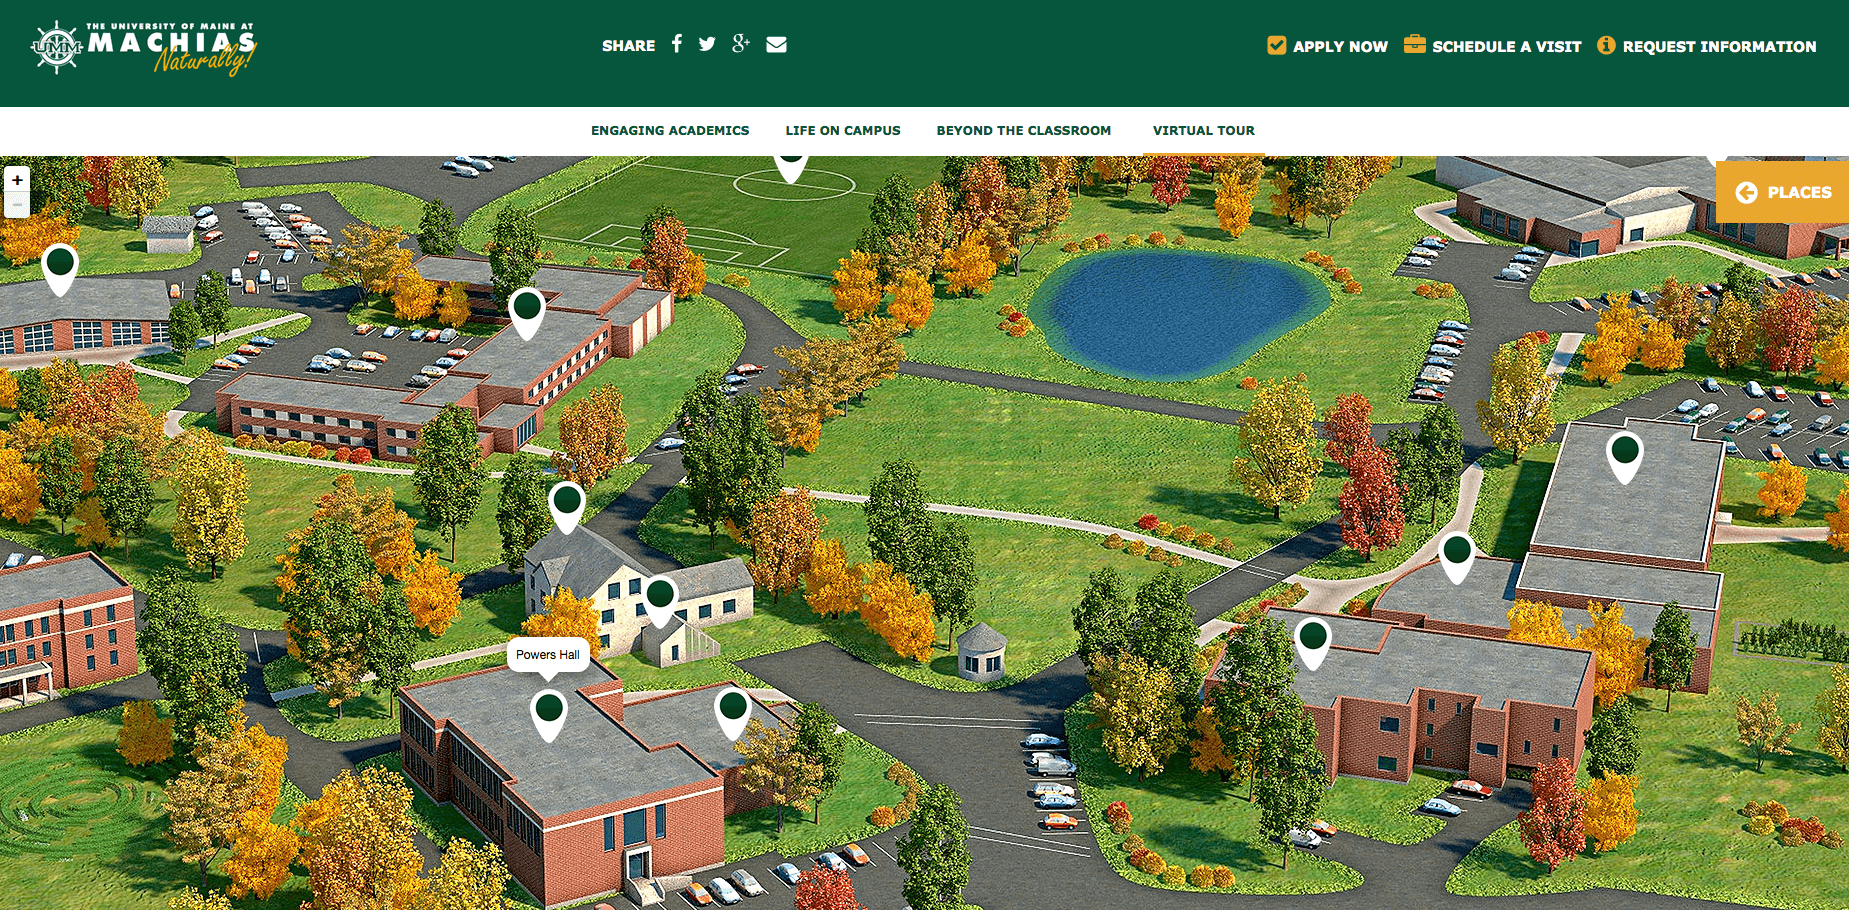 Machias 3D Campus Map